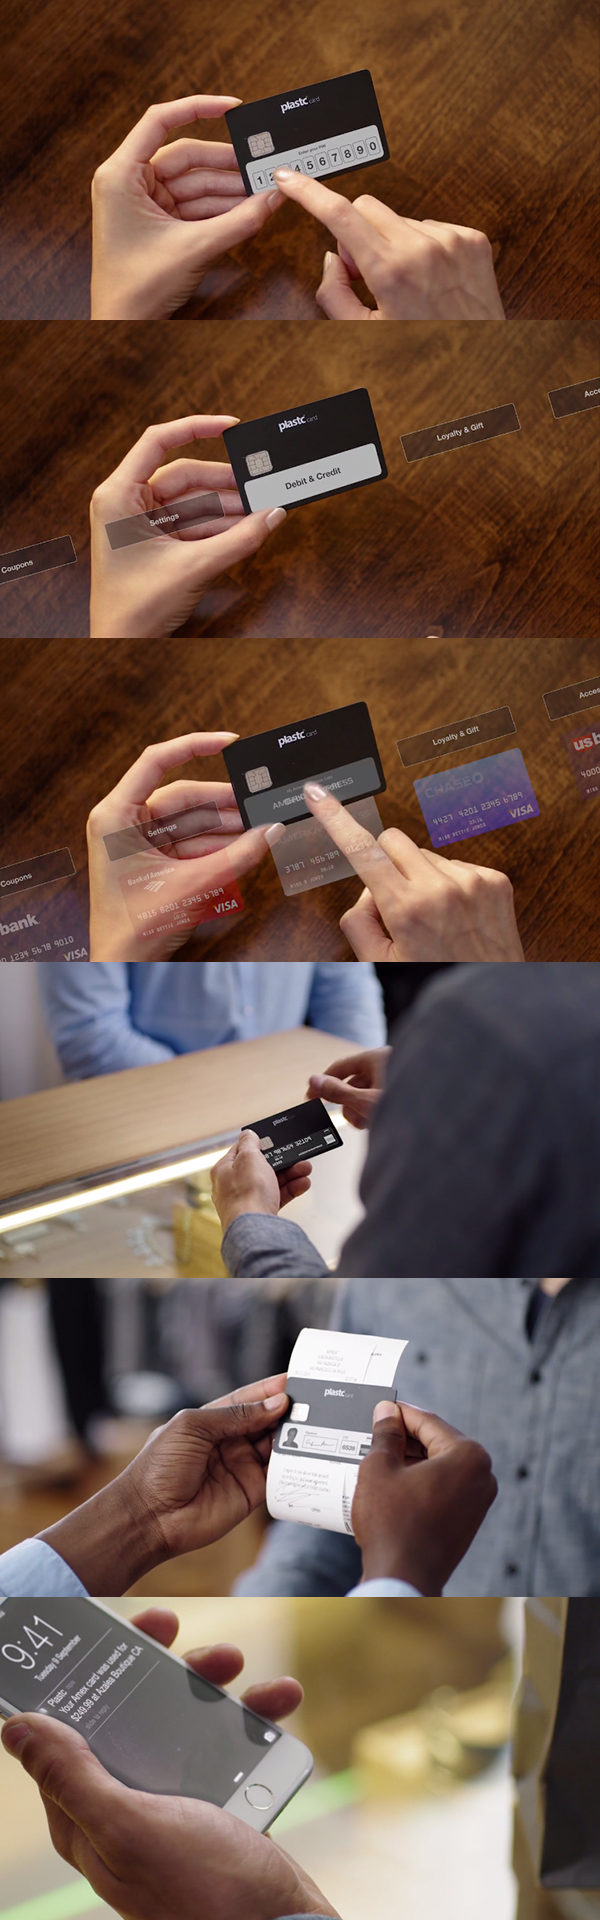 All cards on one card - Plastc The All In One Card That Could Replace Your Wallet